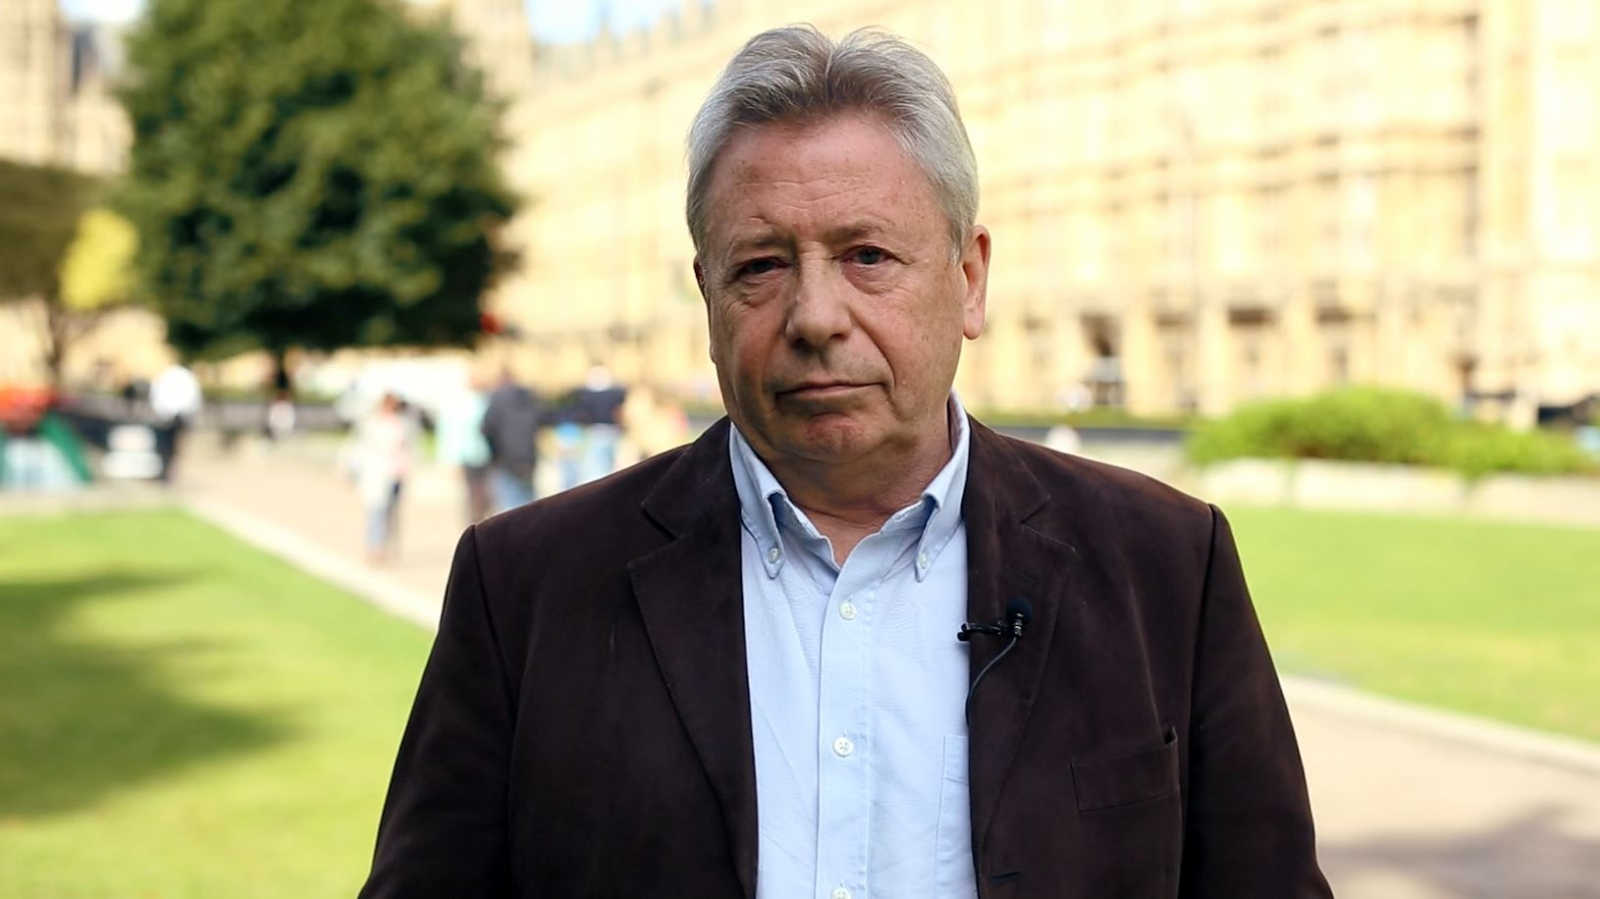 Political Times: Cameron Breaks Holiday to Coordinate Reaction to Foley Beheading